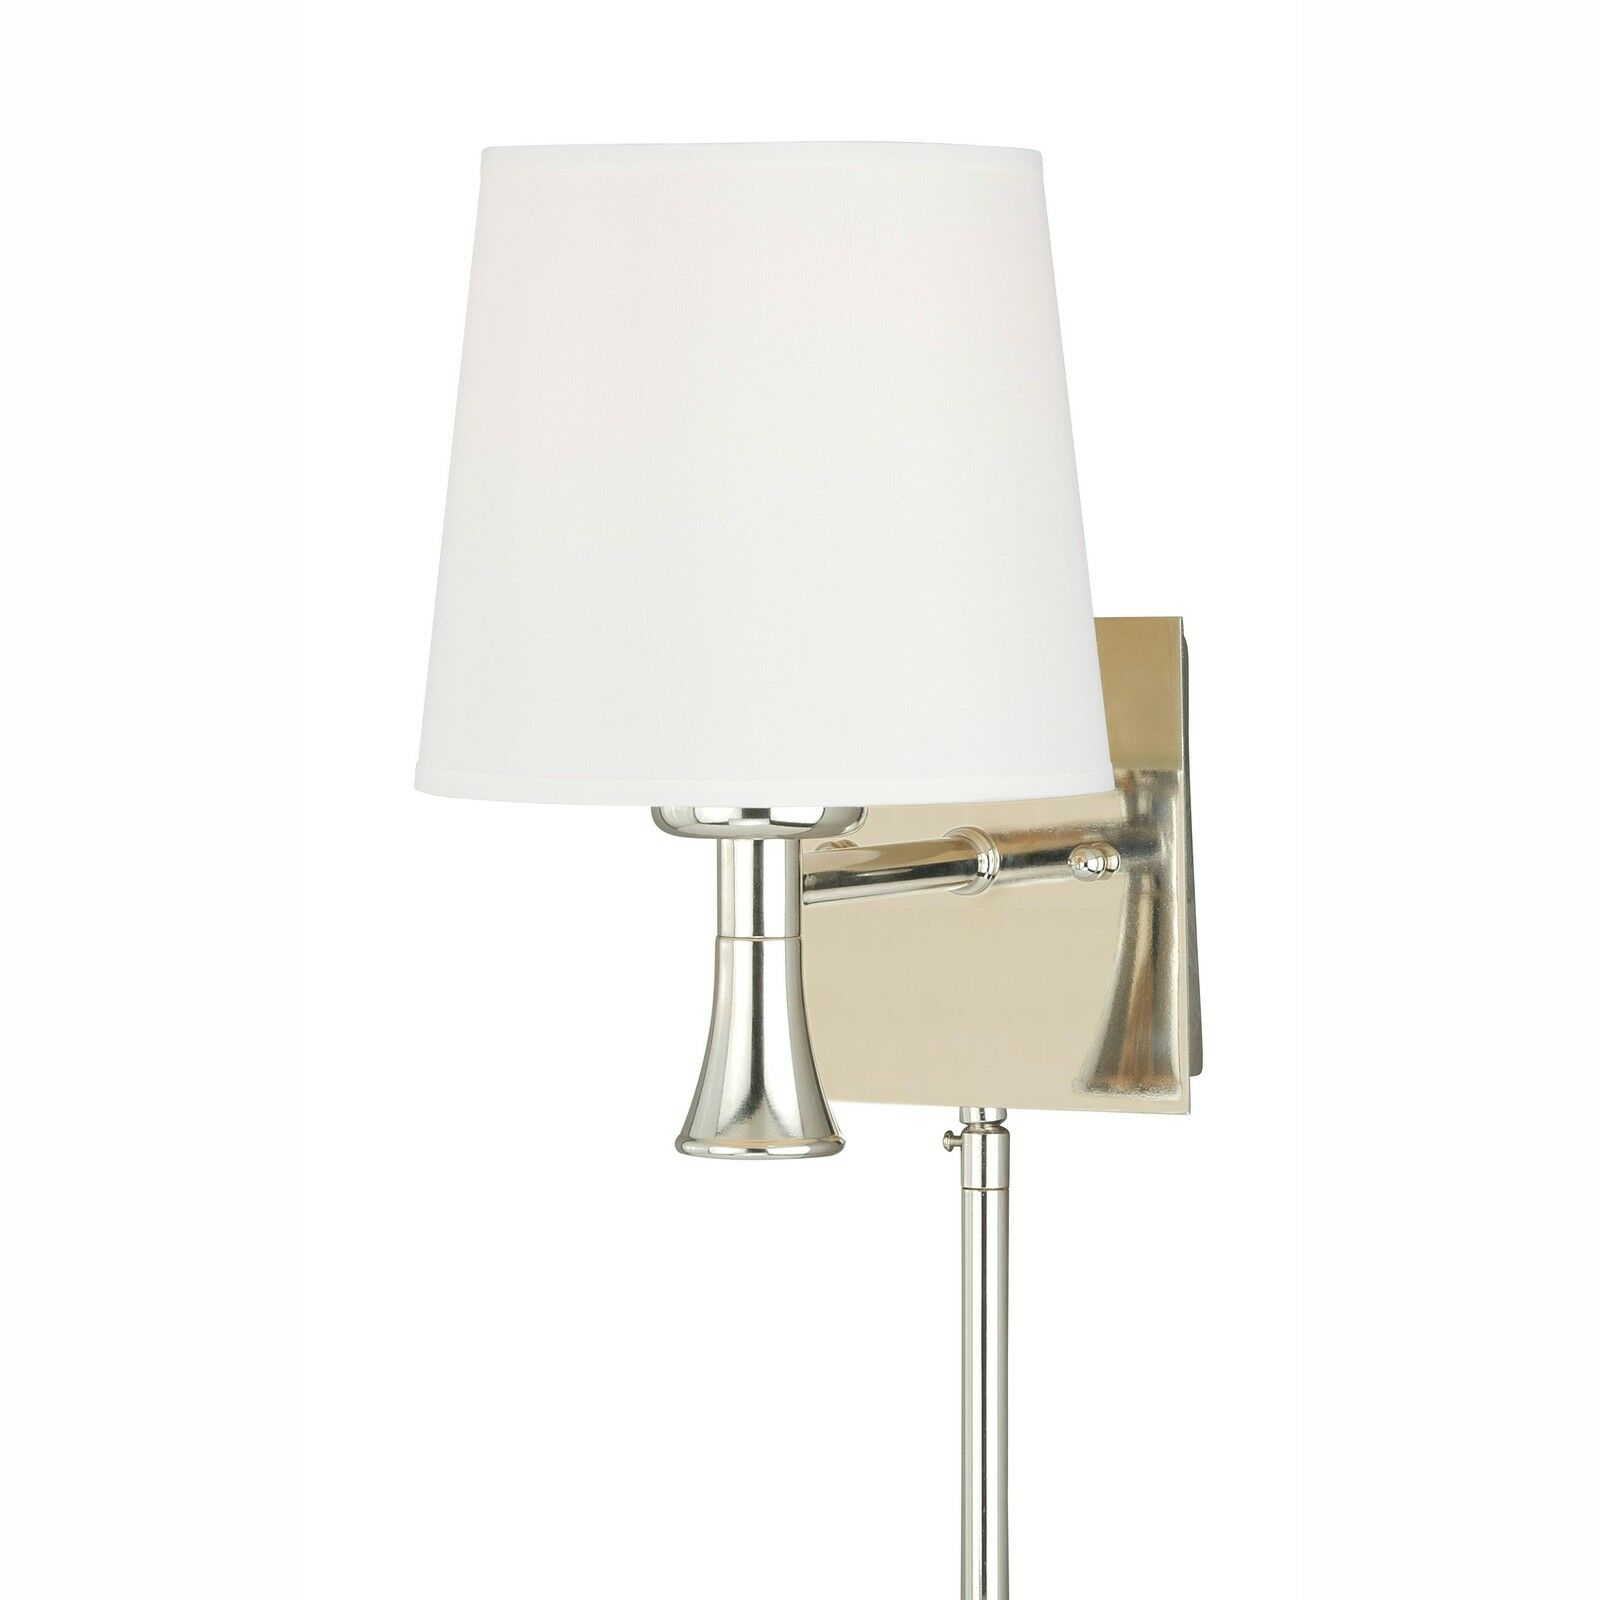 Vaxcel chapeau smart lighting indoor wall light polished nickel picture 1 of 8 aloadofball Choice Image